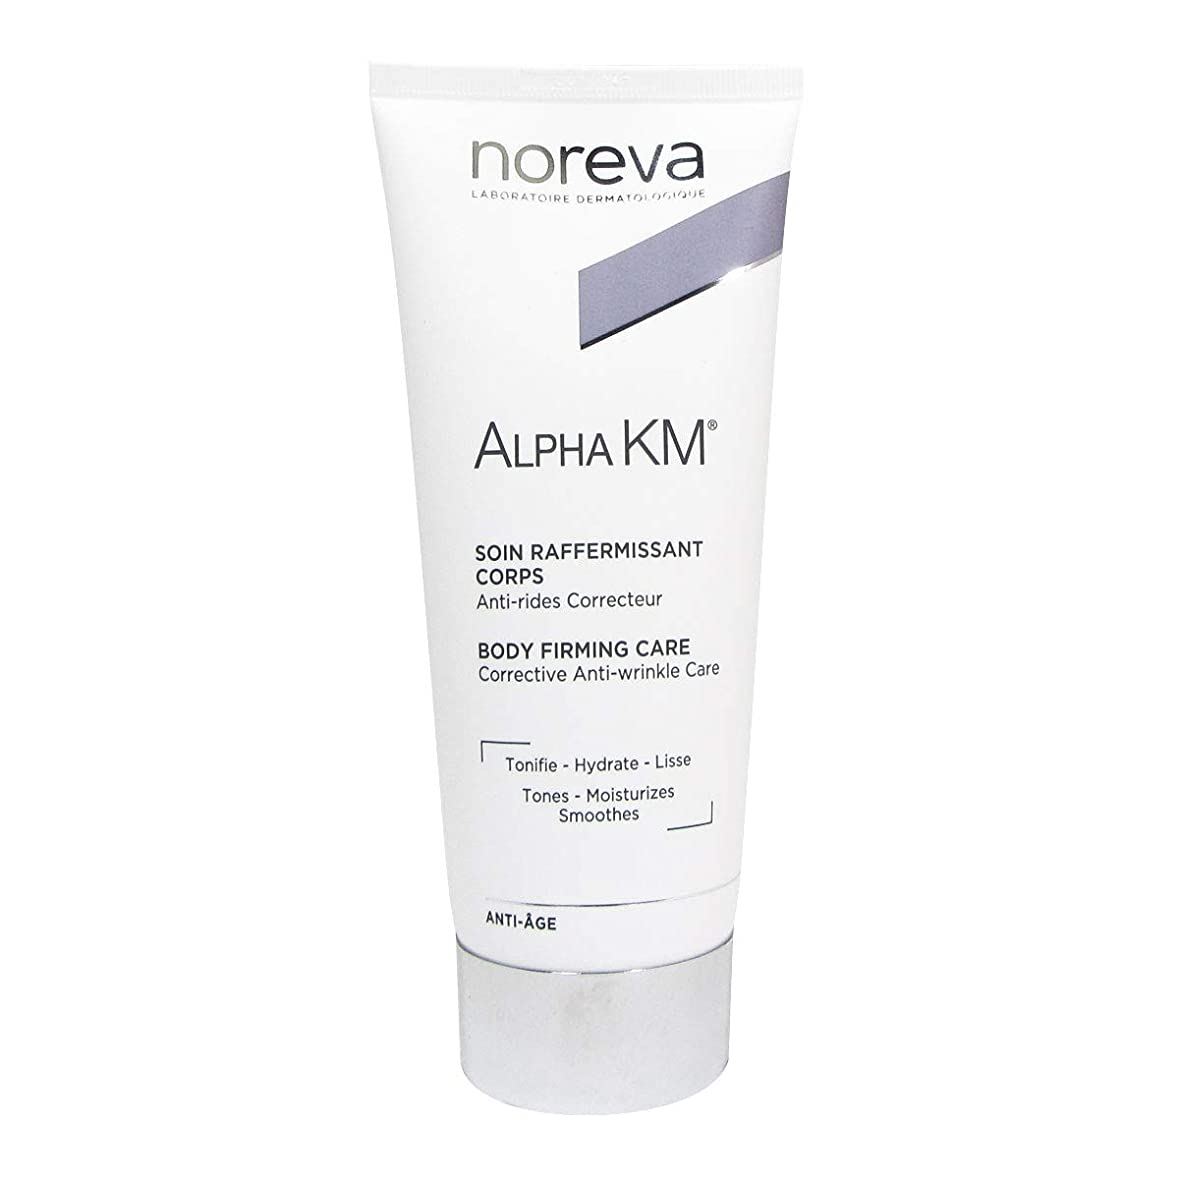 論争の的塩日常的にNoreva Alpha Km Body Firming Anti-ageing Treatment 200ml [並行輸入品]